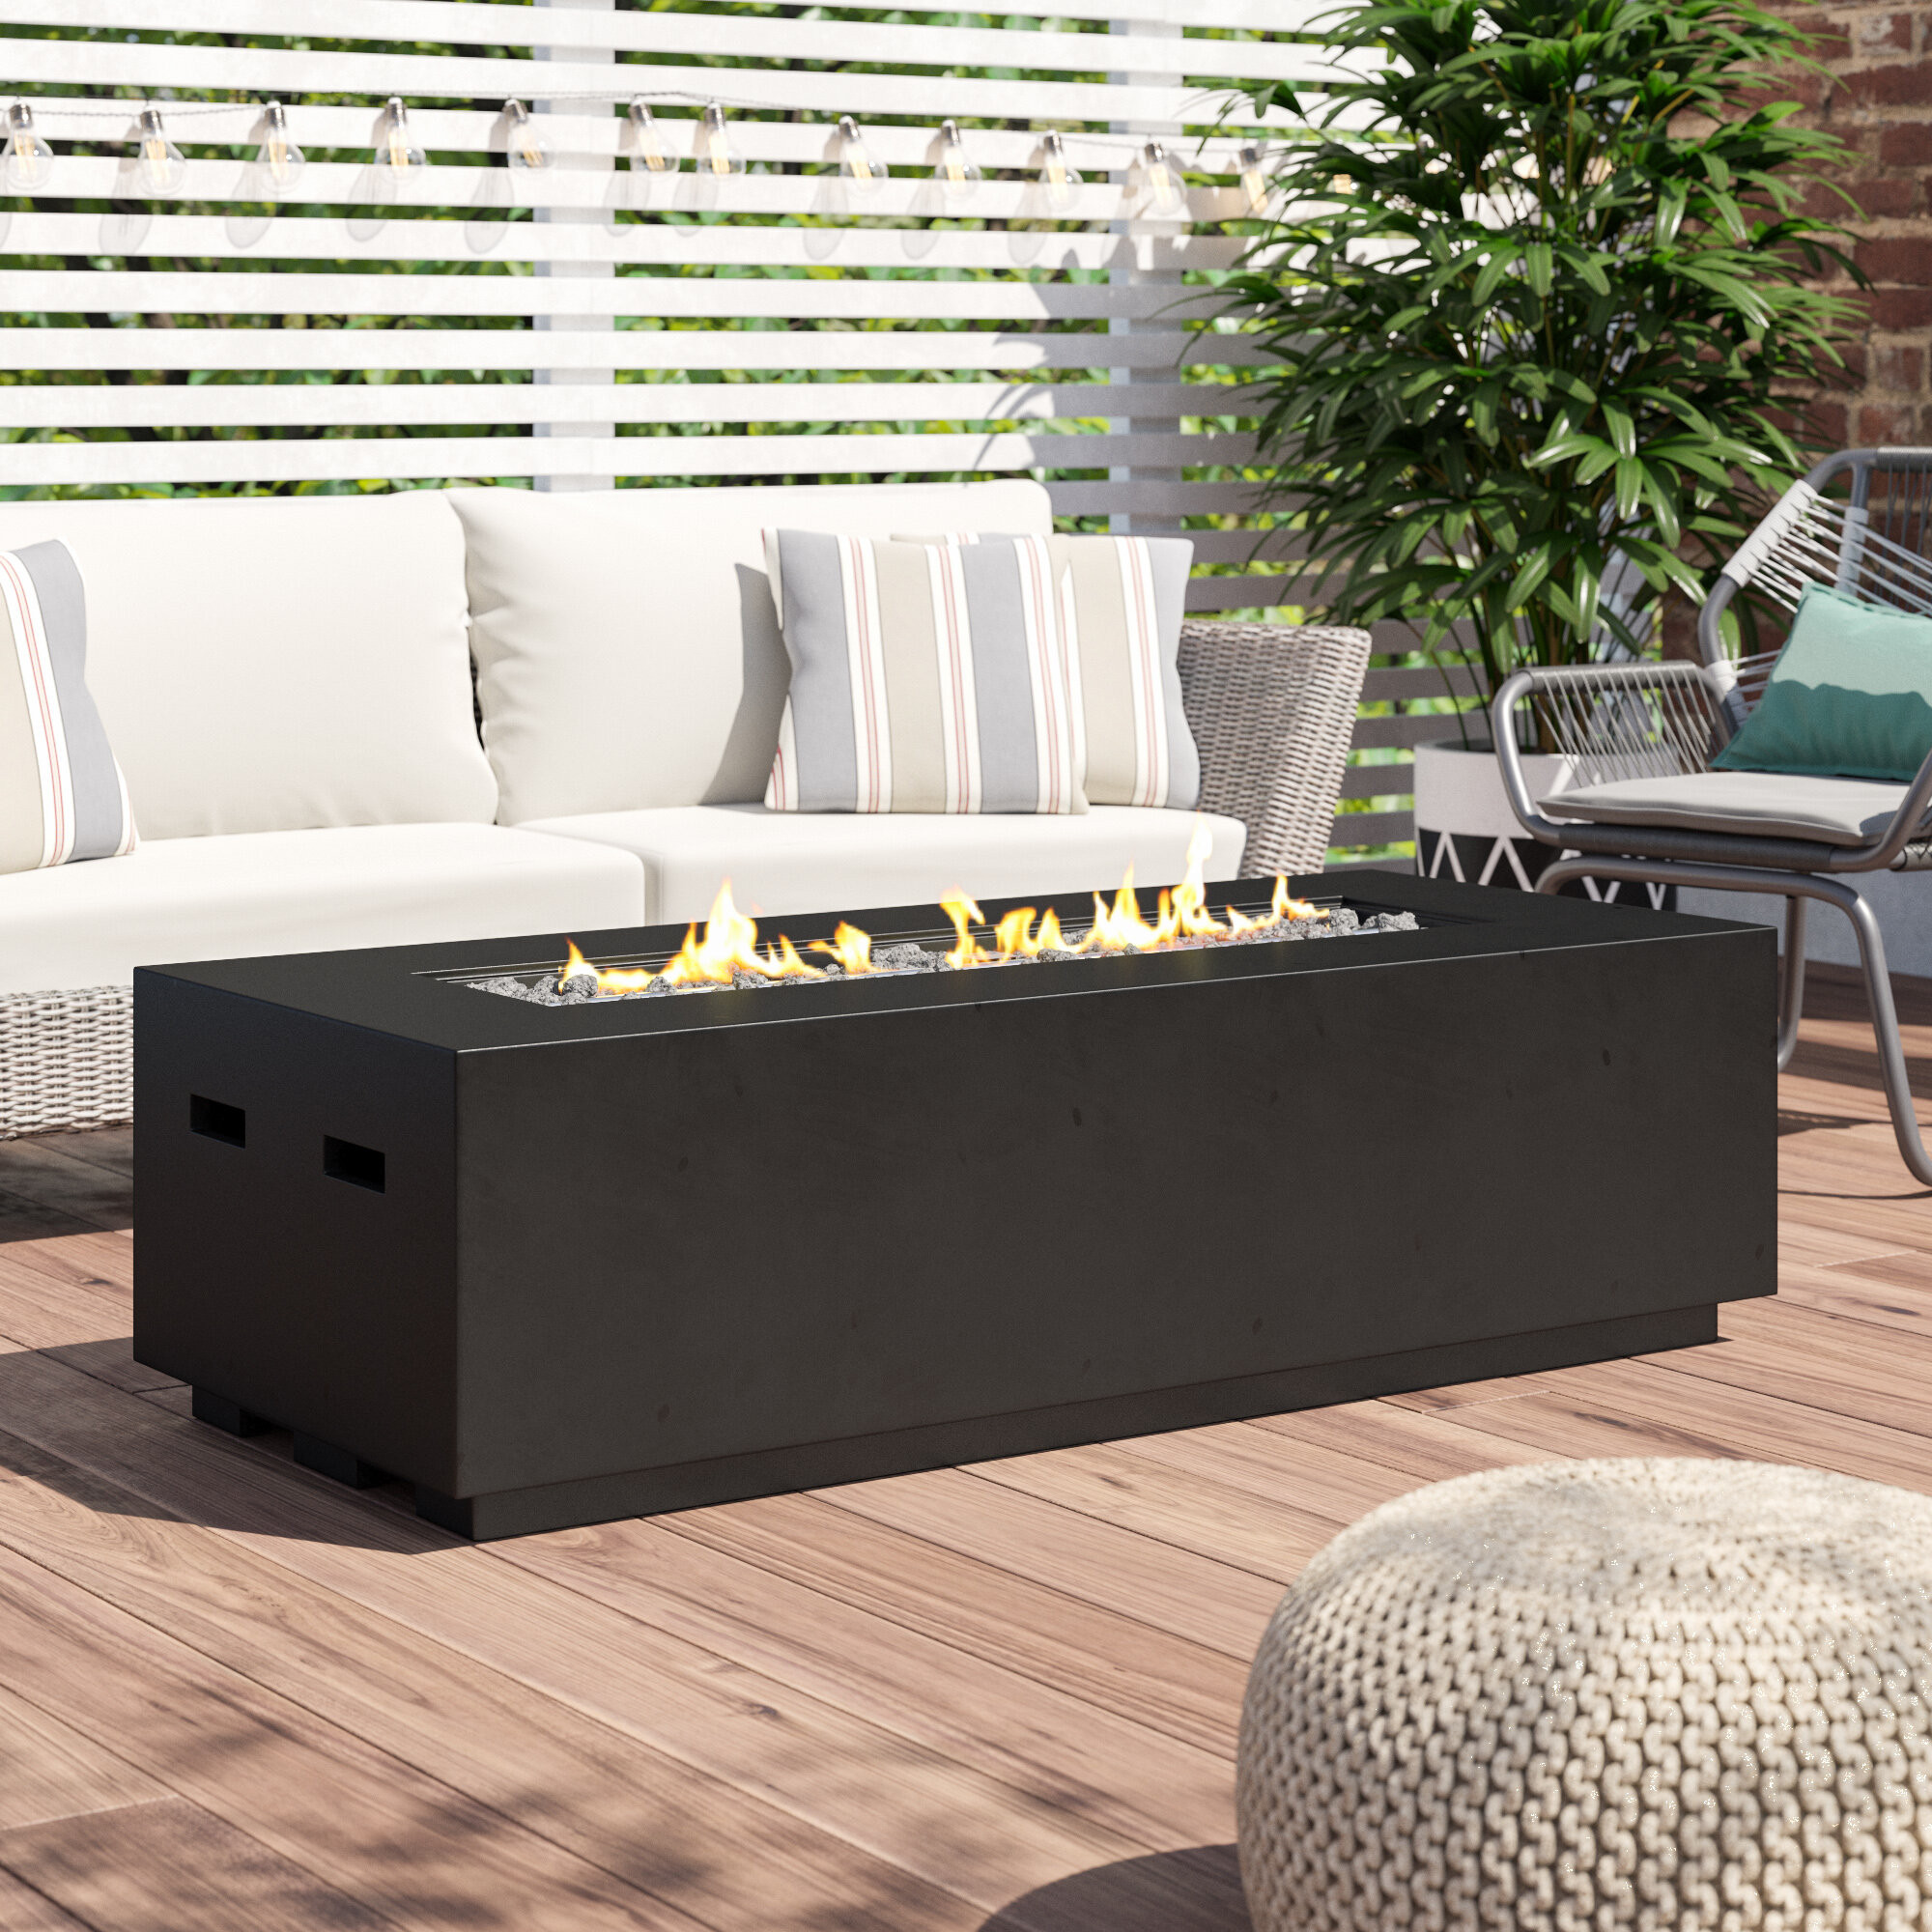 Propane Fire Pit Coffee Table  Coffee Table Fire Pit Propane